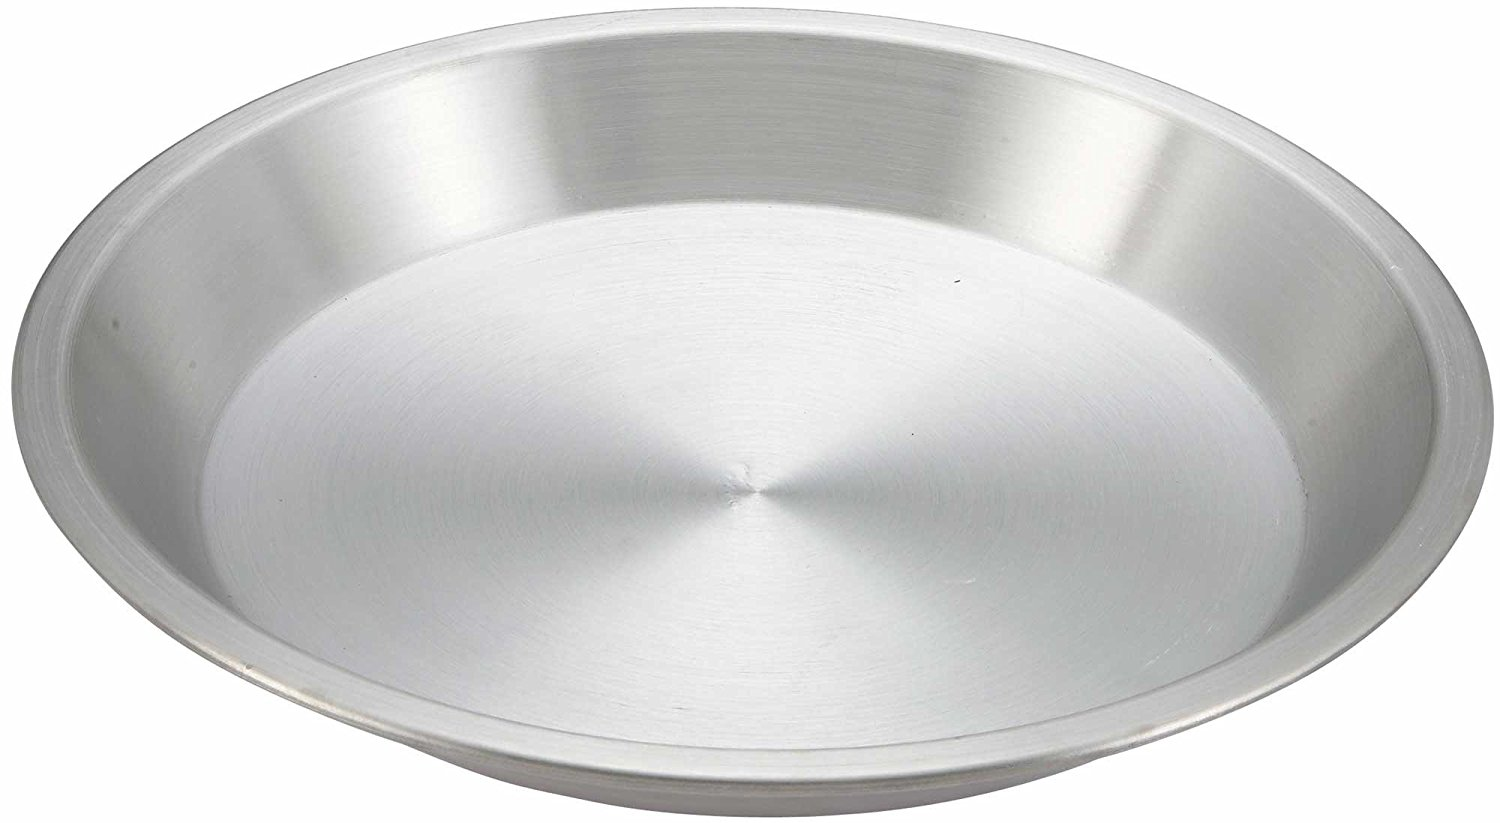 APPL-10 Aluminum Pie Pan, 10-Inch, Ship from USA,Brand Winco by